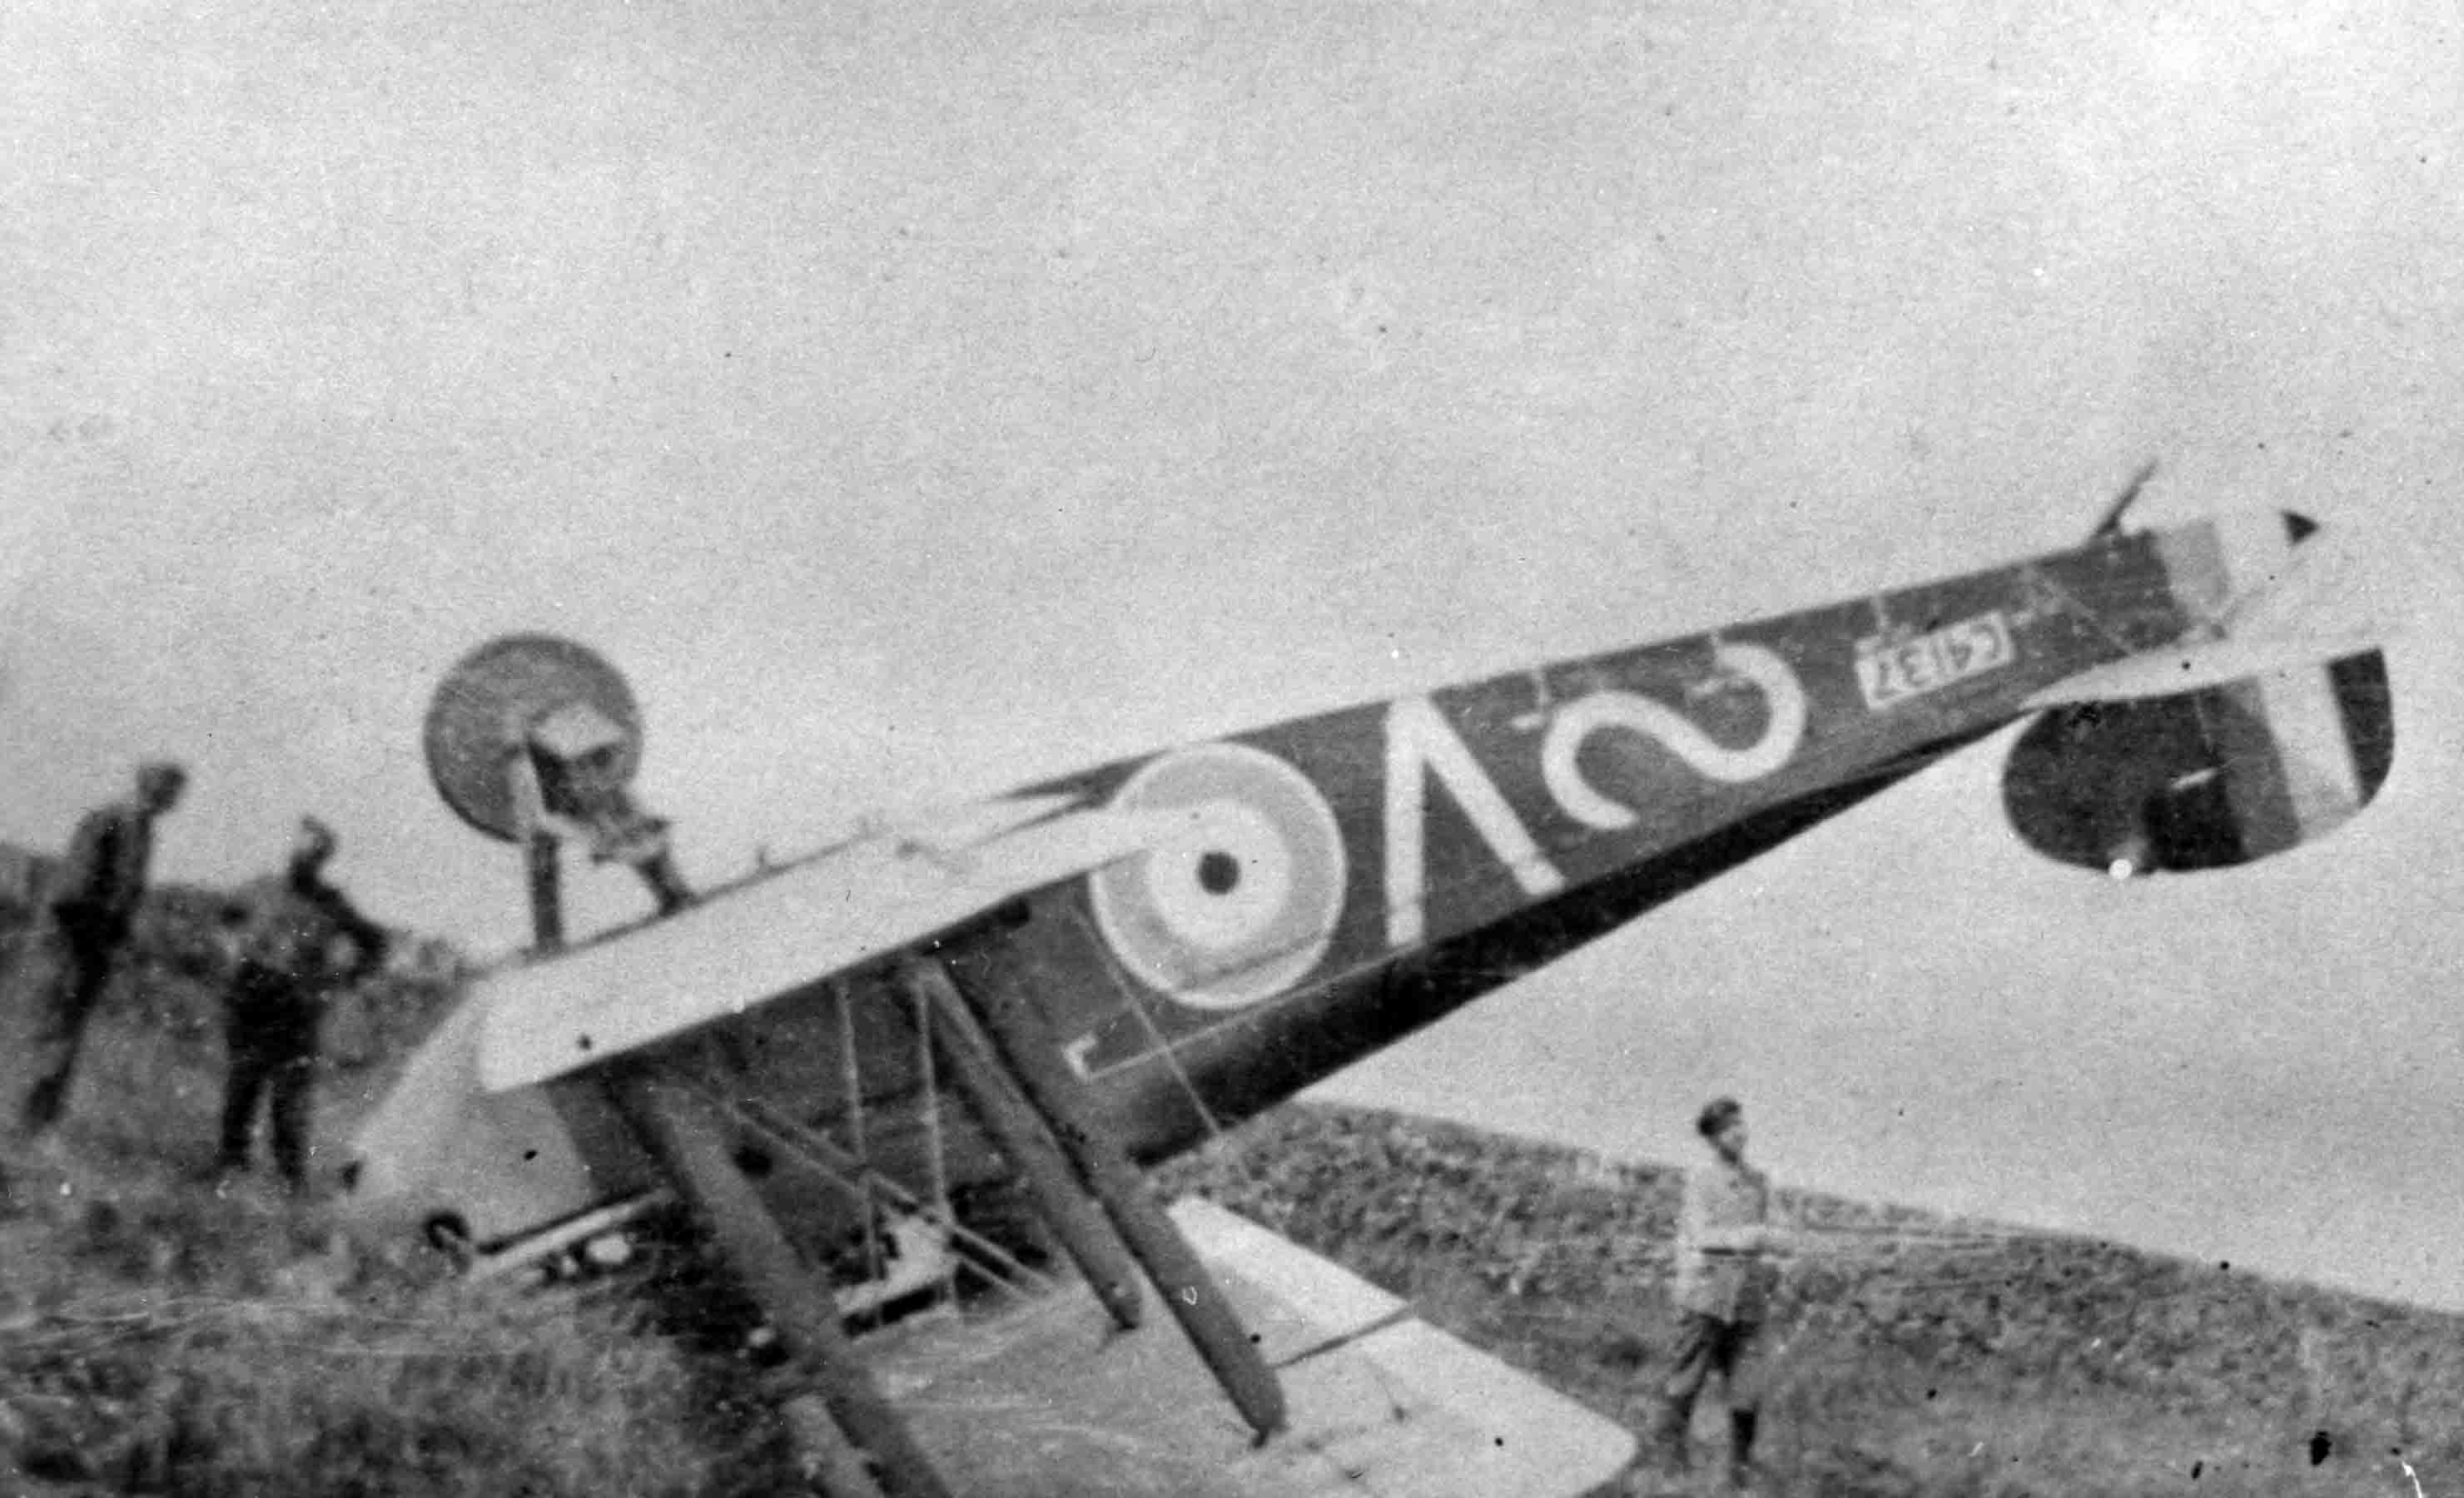 X003-2602/16061: This Dolphin, serial C4137, (V), of 87 Squadron, RAF, crashed at Rougefay on 16 August 1918 and performed an almost complete somersault. The squadron marking of a supine 'S' was applied to the rear fuselage.